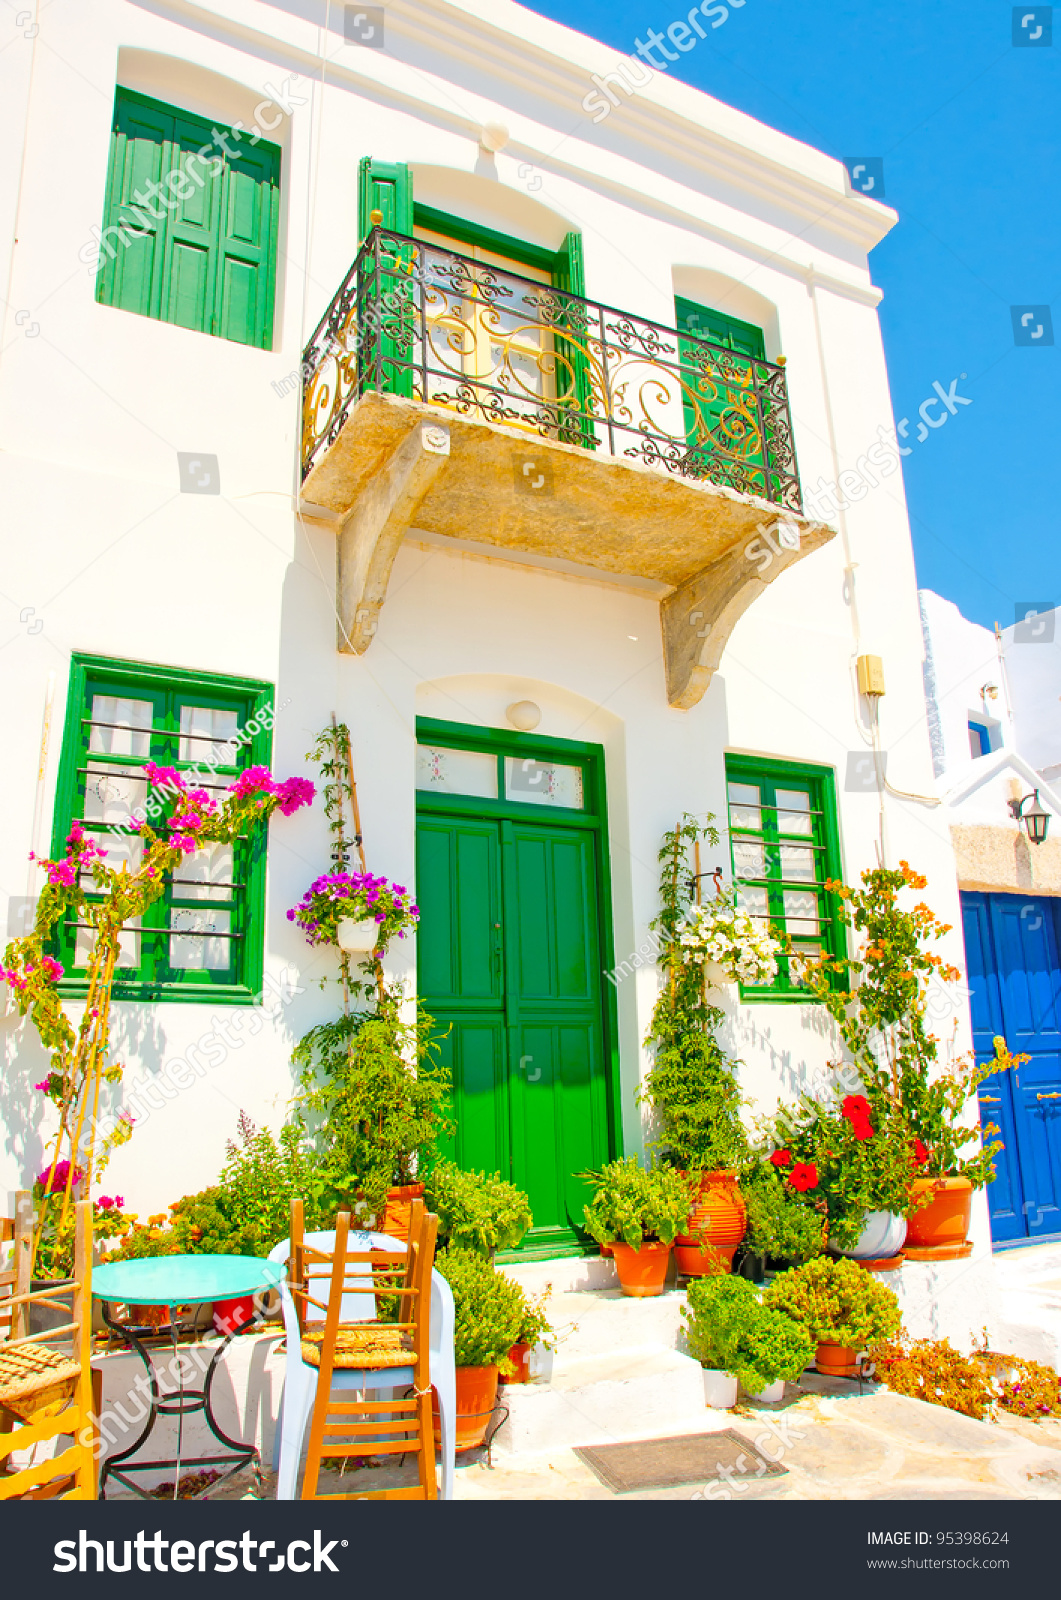 Old beautiful traditional house in chora the capital of amorgos island - Beautiful Old Traditional House With Wooden Green Colored Doors And Windows In Chora The Capital Of